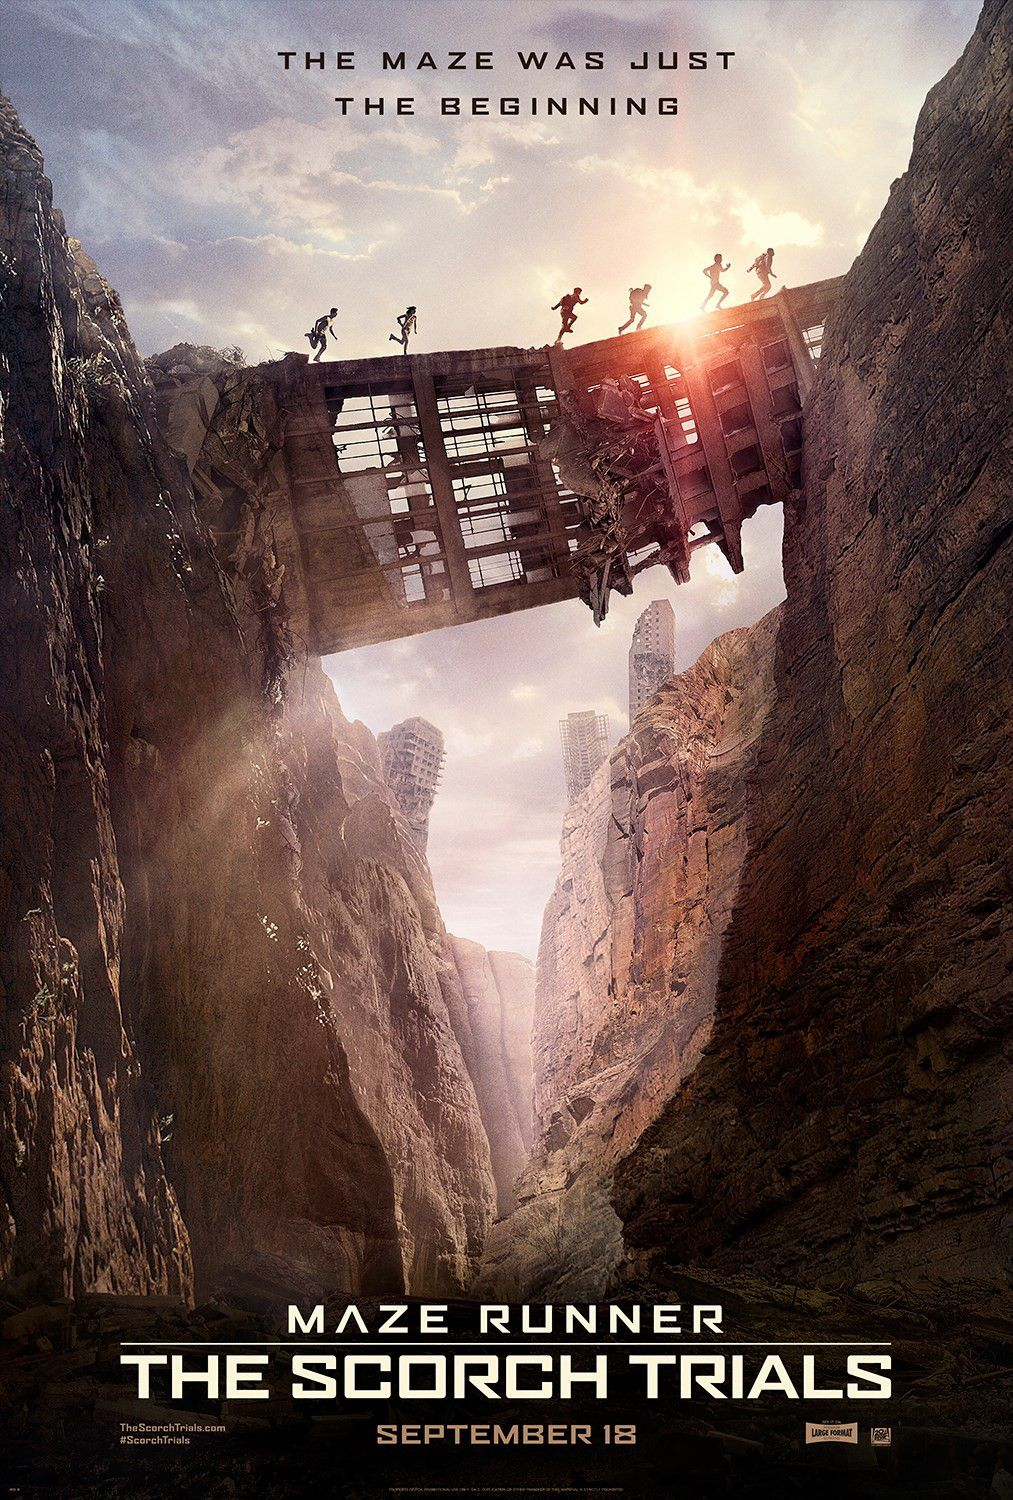 Maze Runner 2 - the Scorch Trials - La Fuga - film poster